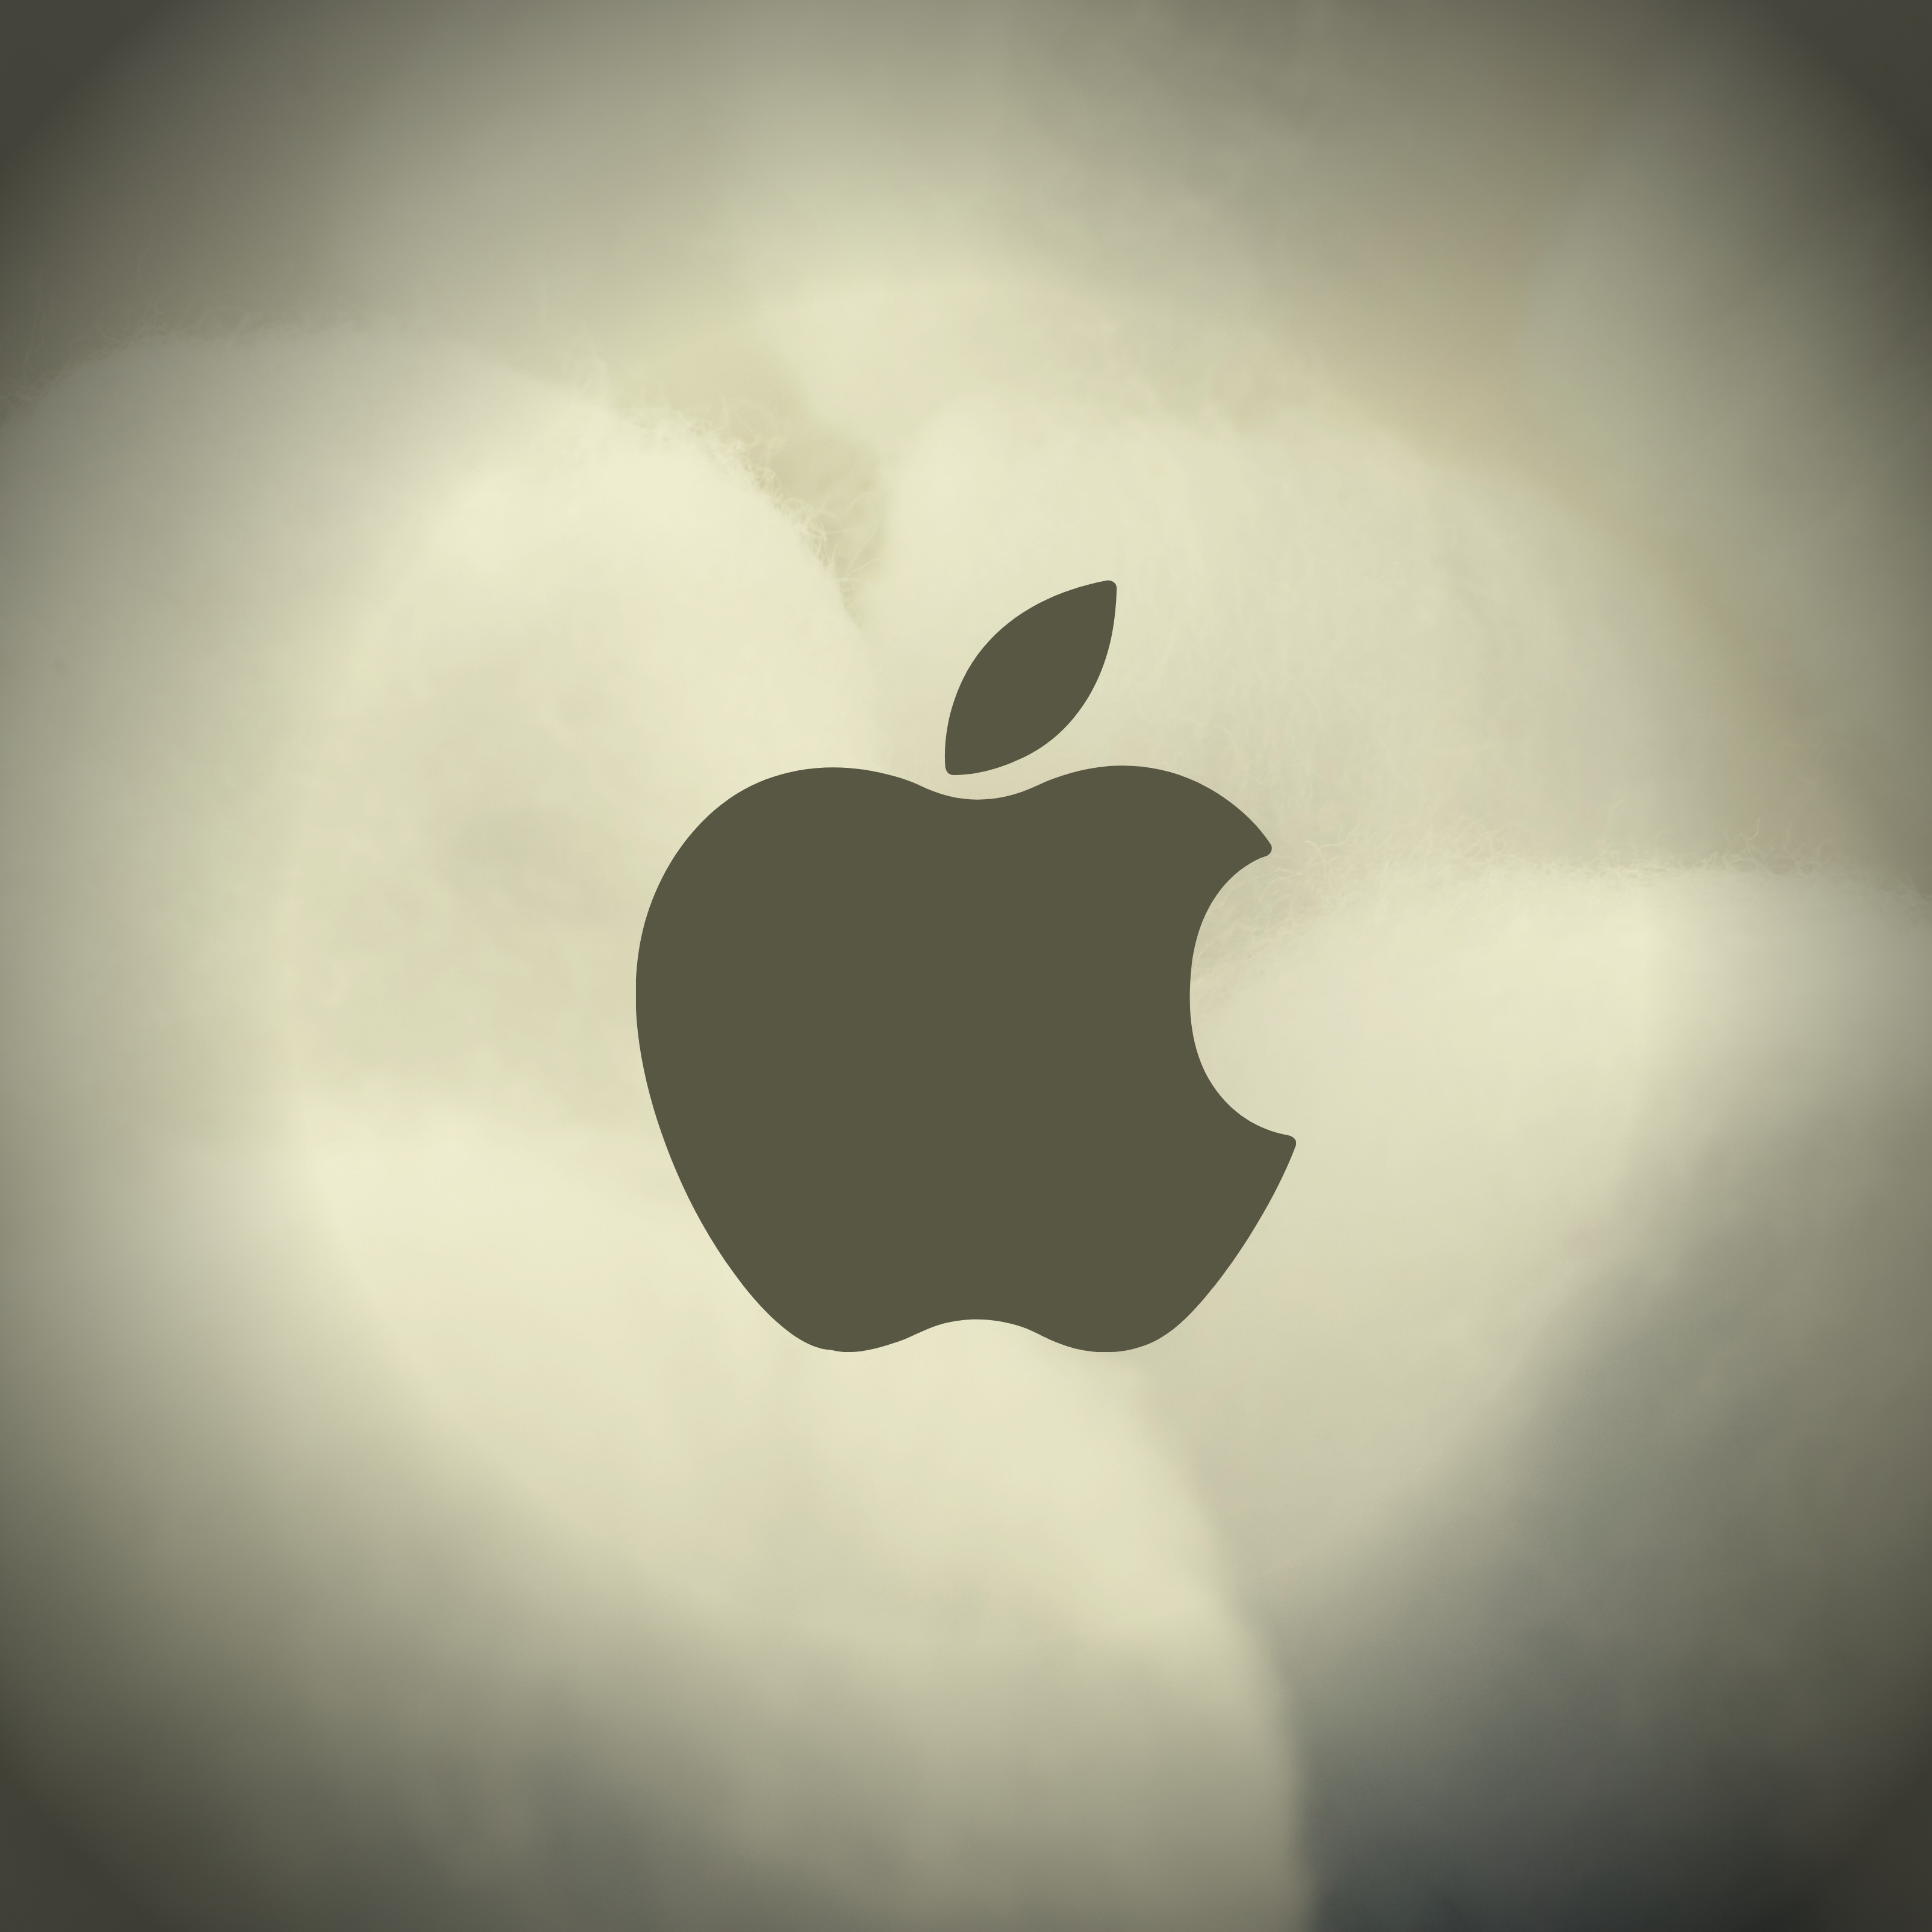 iPad Wallpapers Apple Logo Cotton Background iPad Wallpaper 3208x3208 px